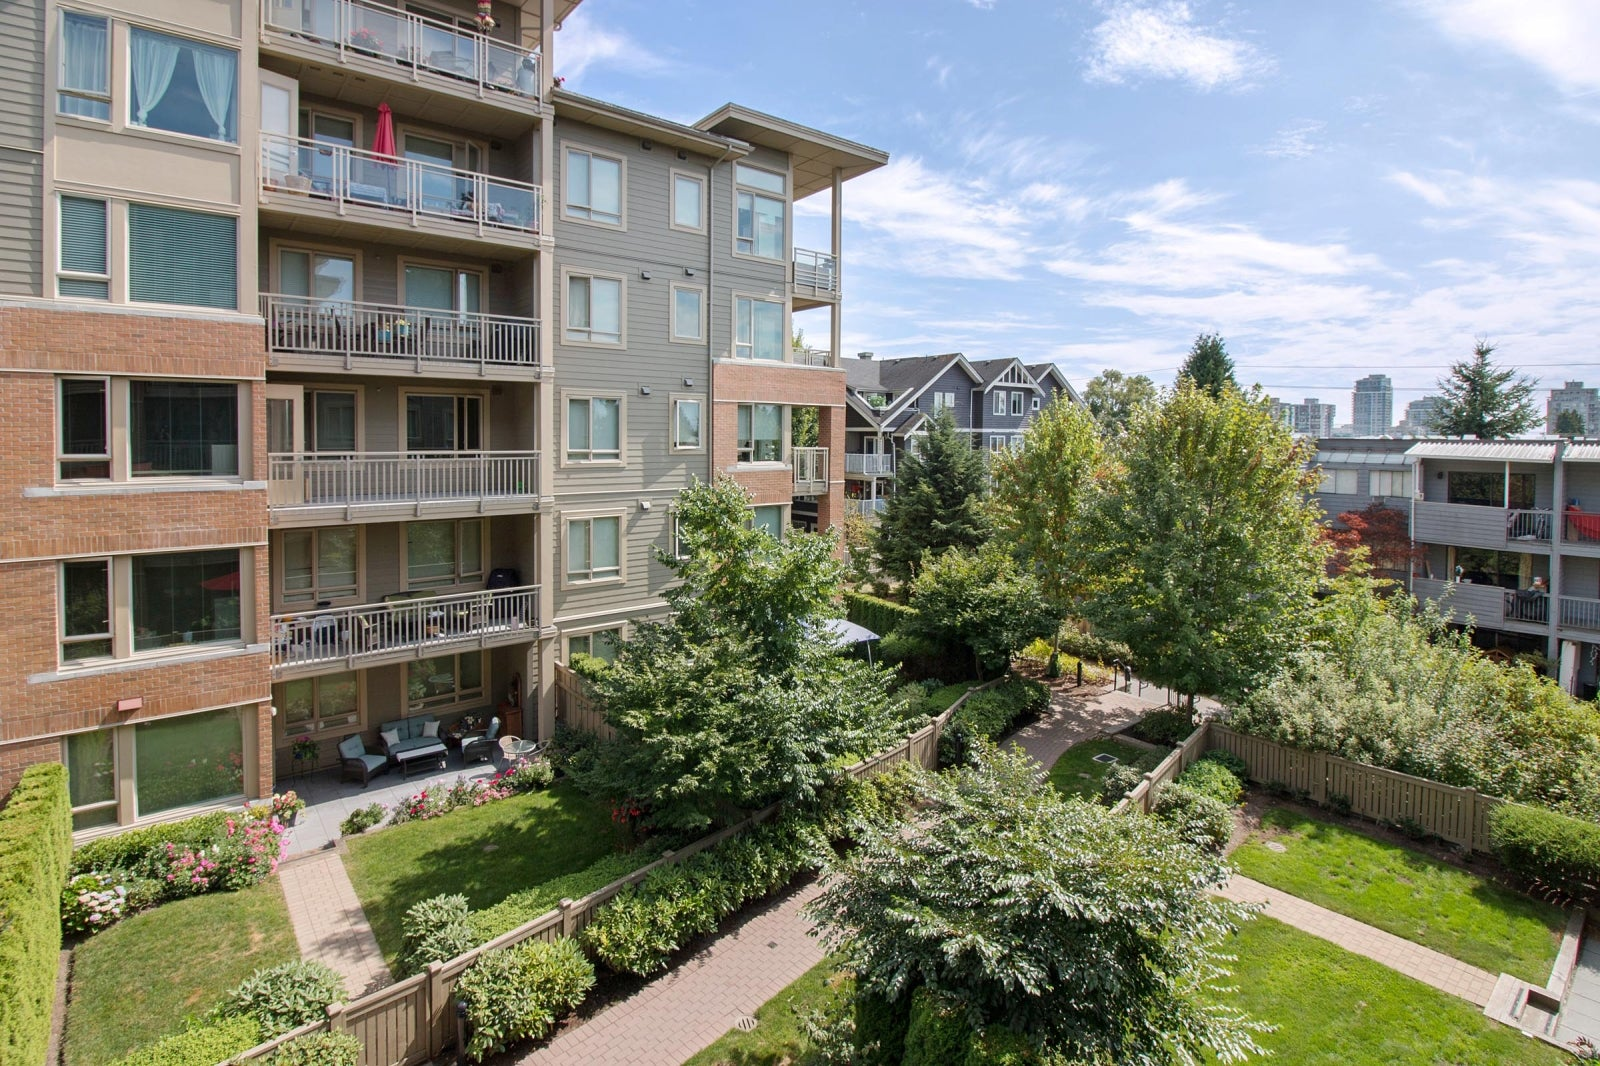 306 139 W 22ND STREET - Central Lonsdale Apartment/Condo for sale, 2 Bedrooms (R2201915) #20